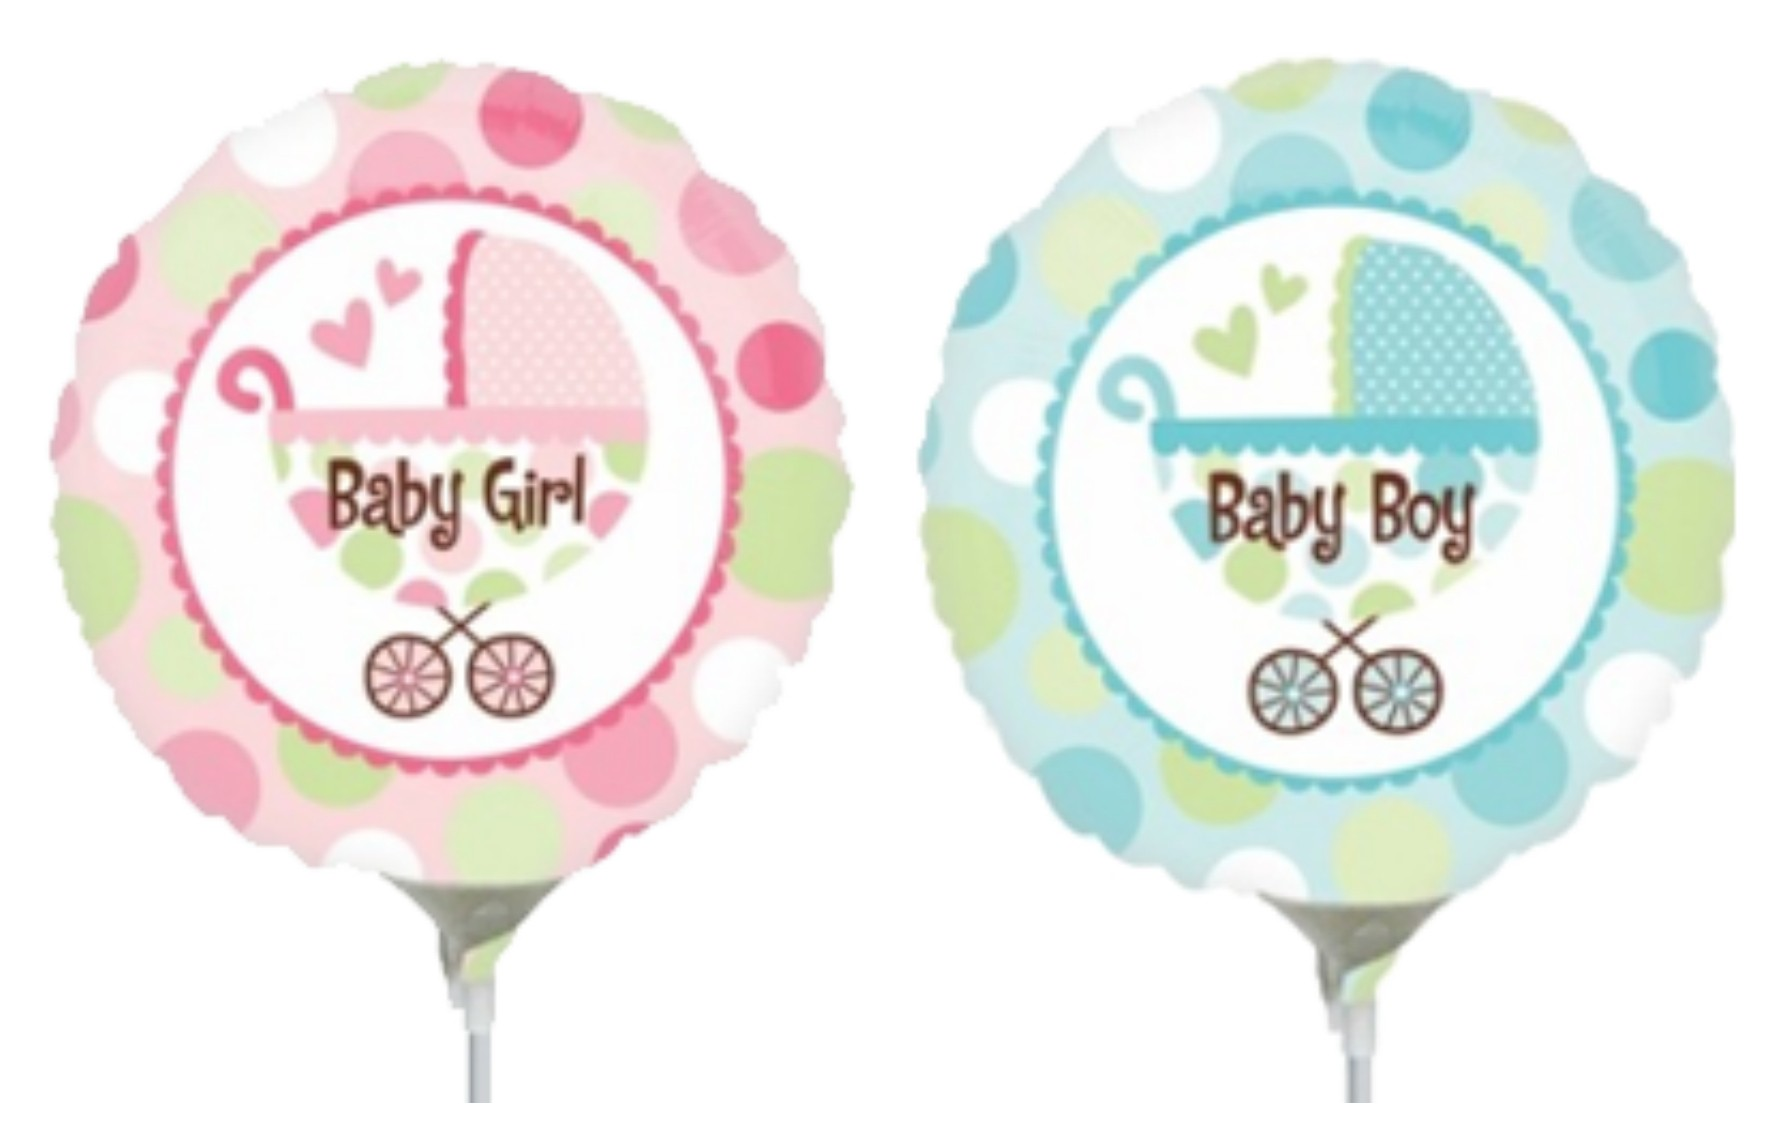 Baby Themed Balloons.